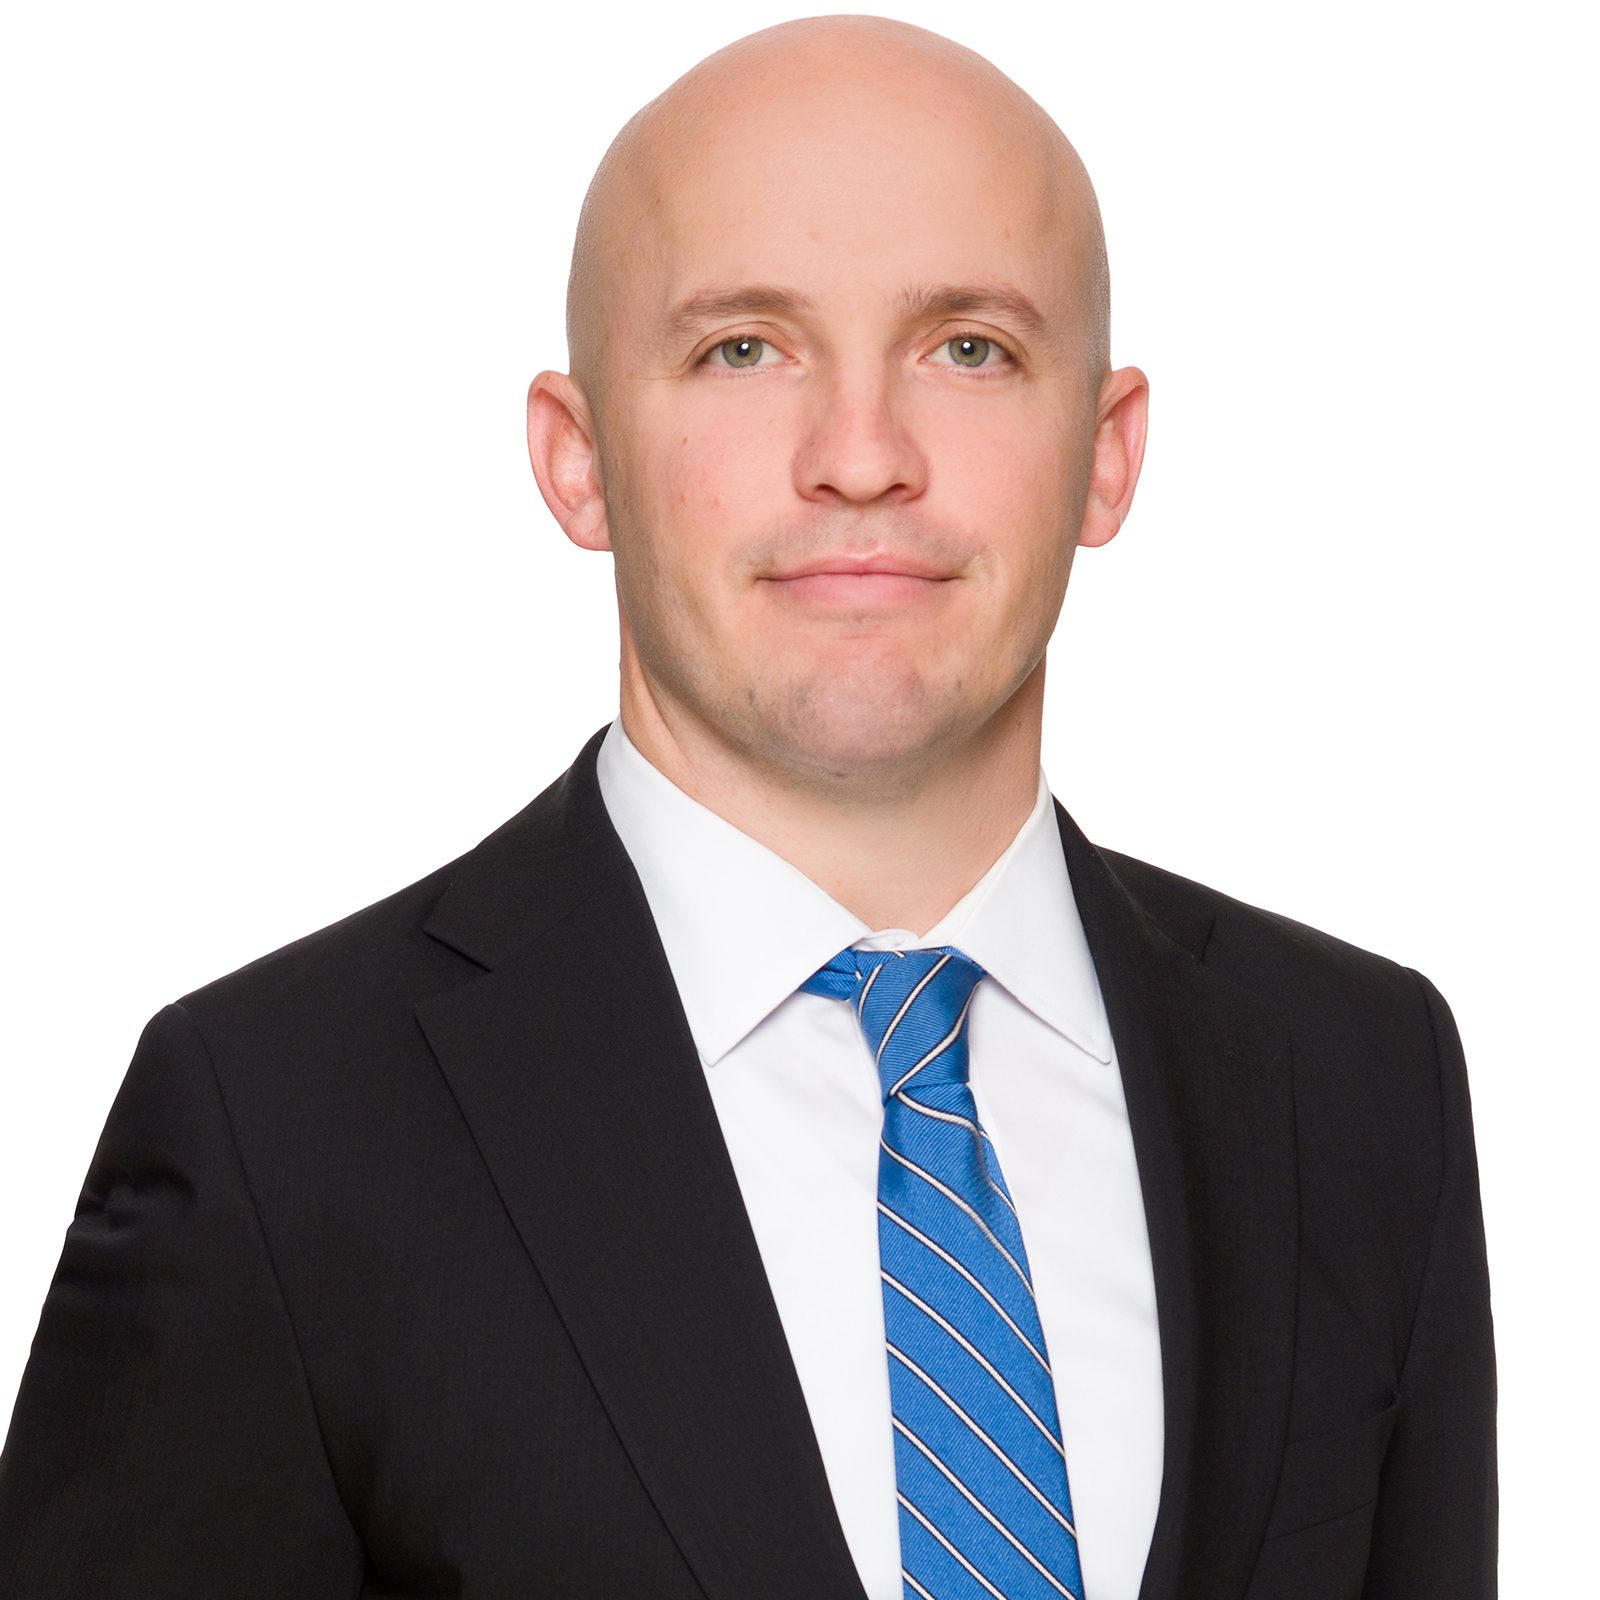 William Barlow - TD Wealth Private Investment Advice - North York, ON M2N 6L7 - (416)512-6676 | ShowMeLocal.com